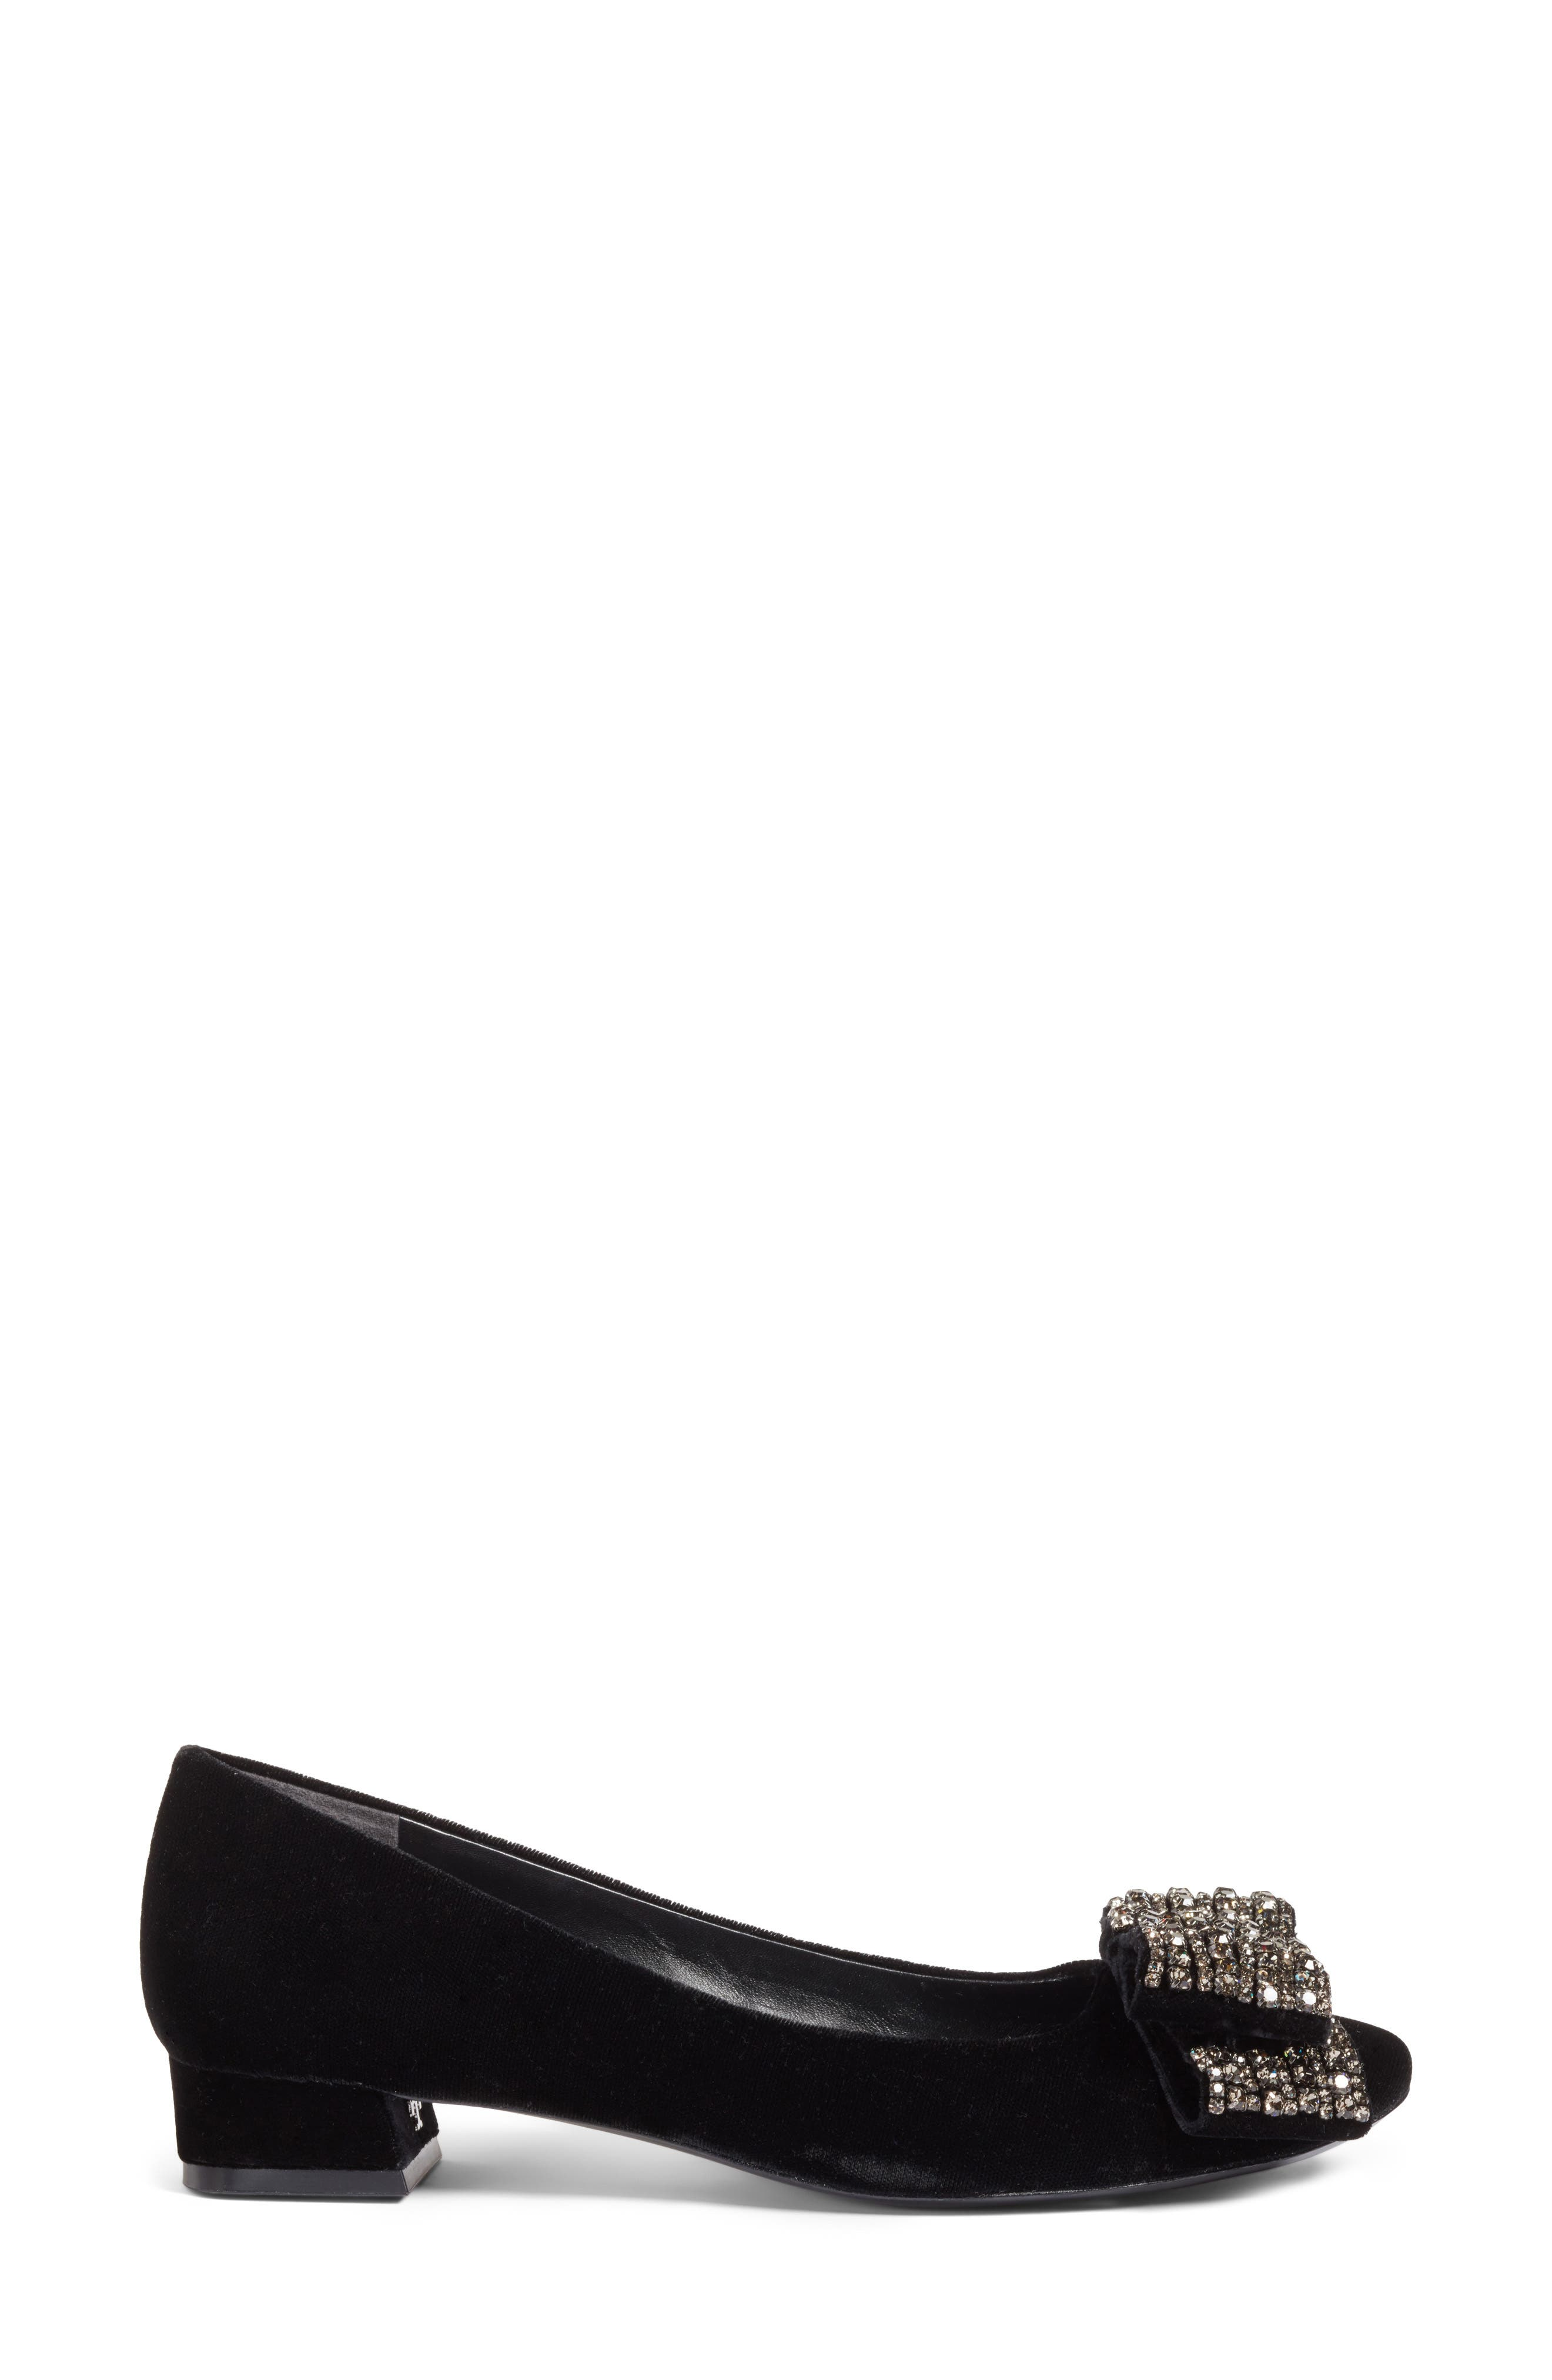 Josephine Embellished Bow Pump,                             Alternate thumbnail 3, color,                             009